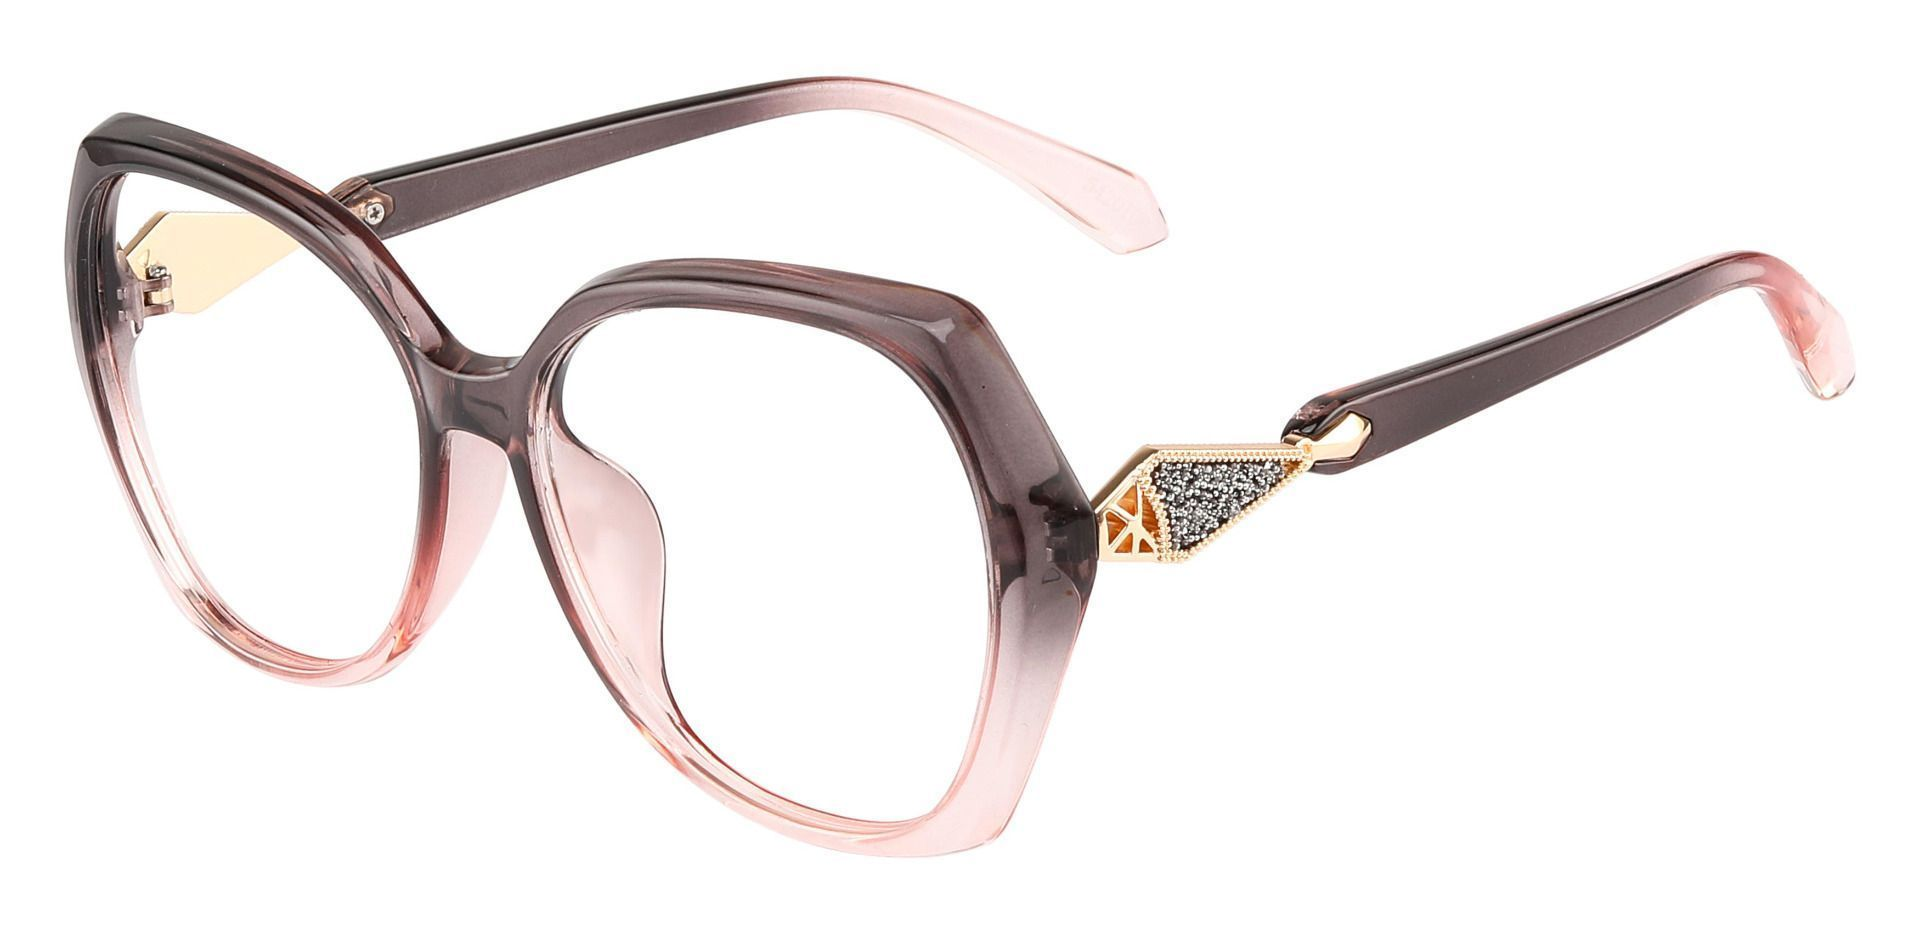 Solitaire Geometric Single Vision Glasses - Pink